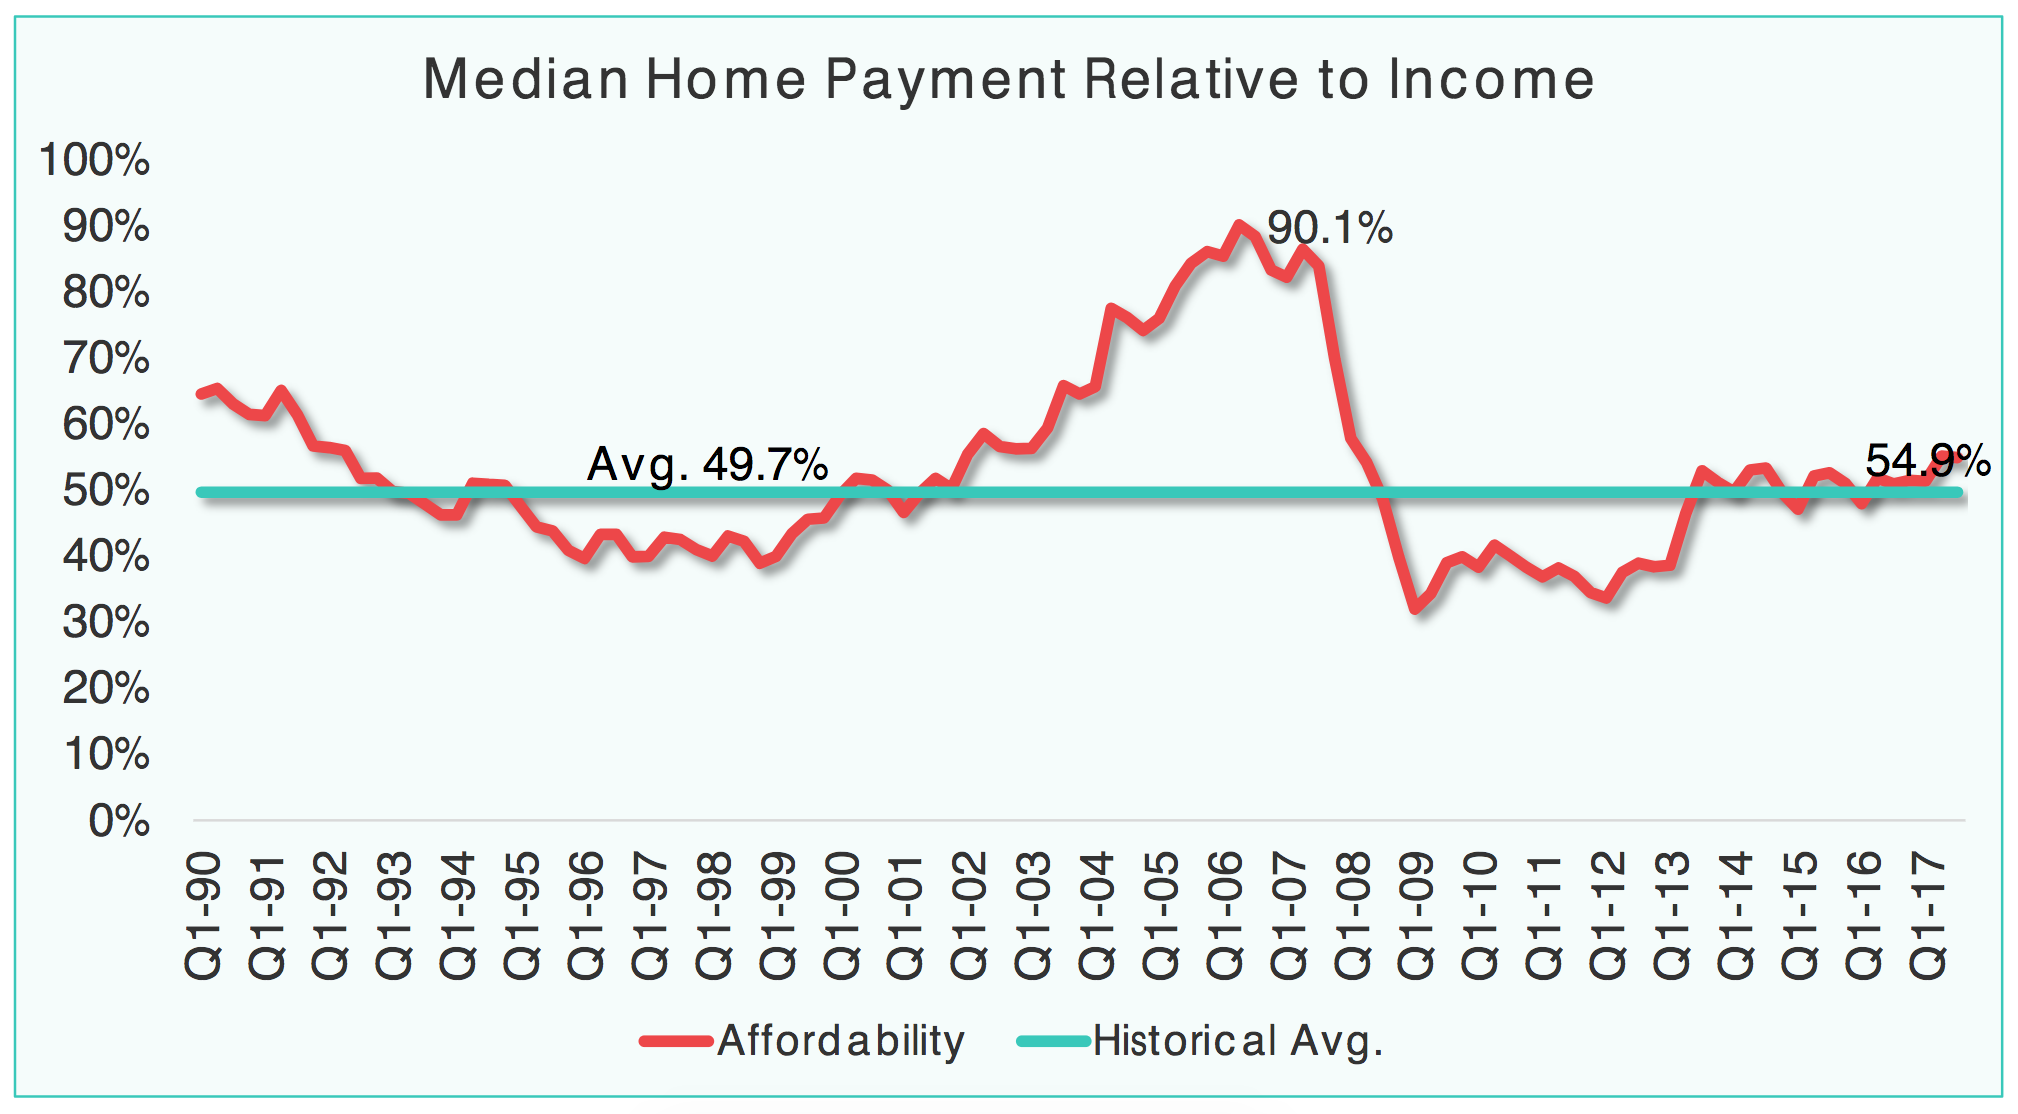 California Median Home Payment Relative to Income